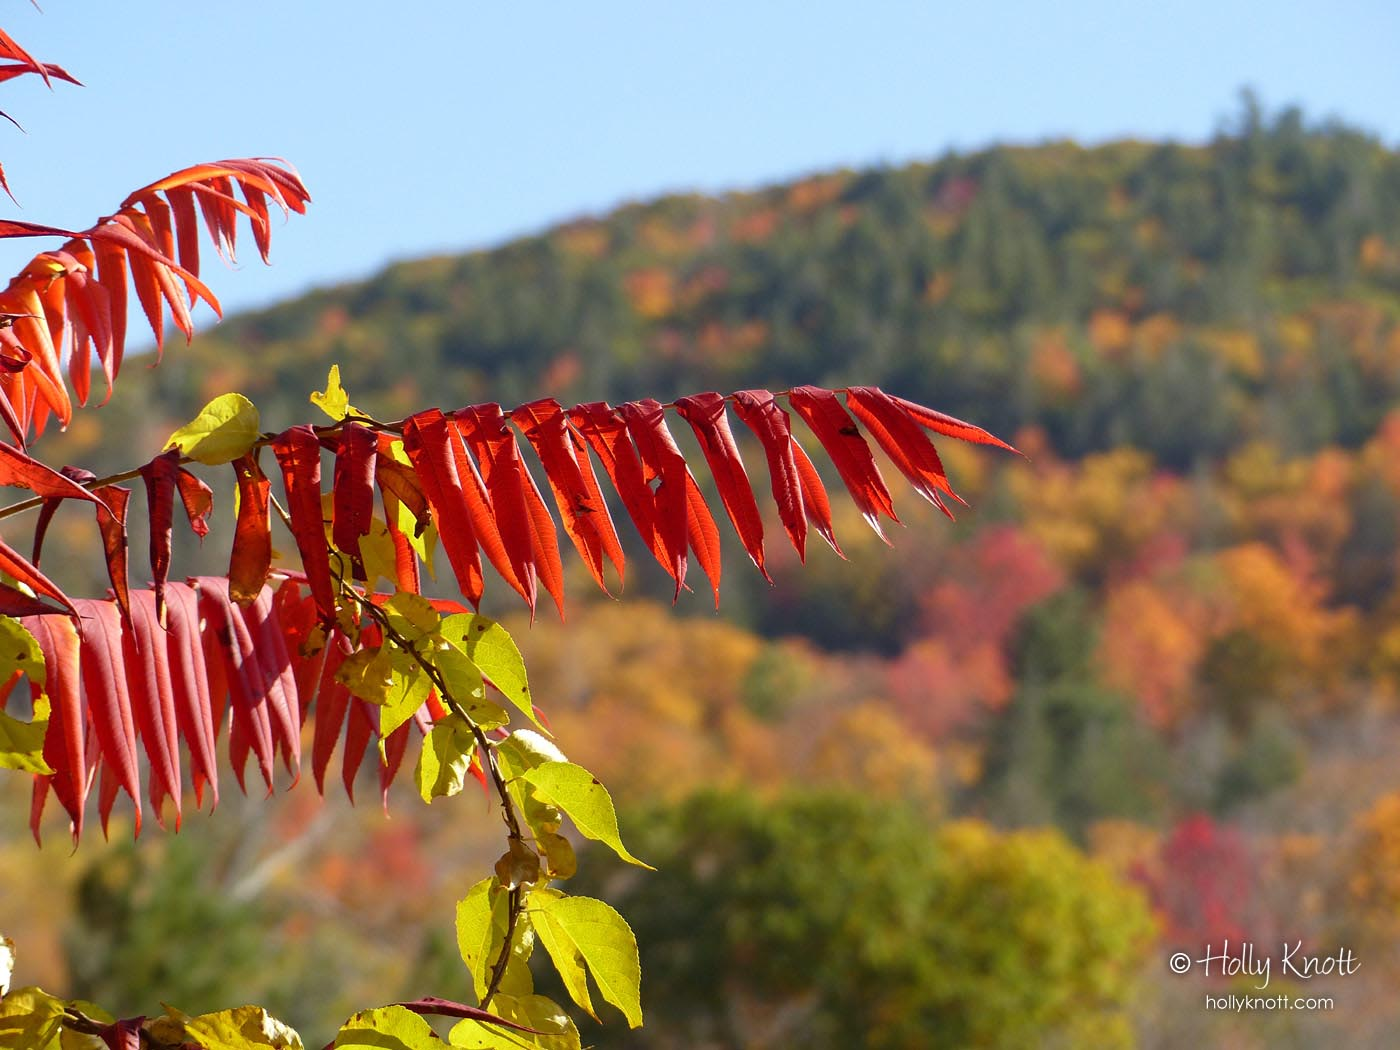 The sumac was brilliant this year